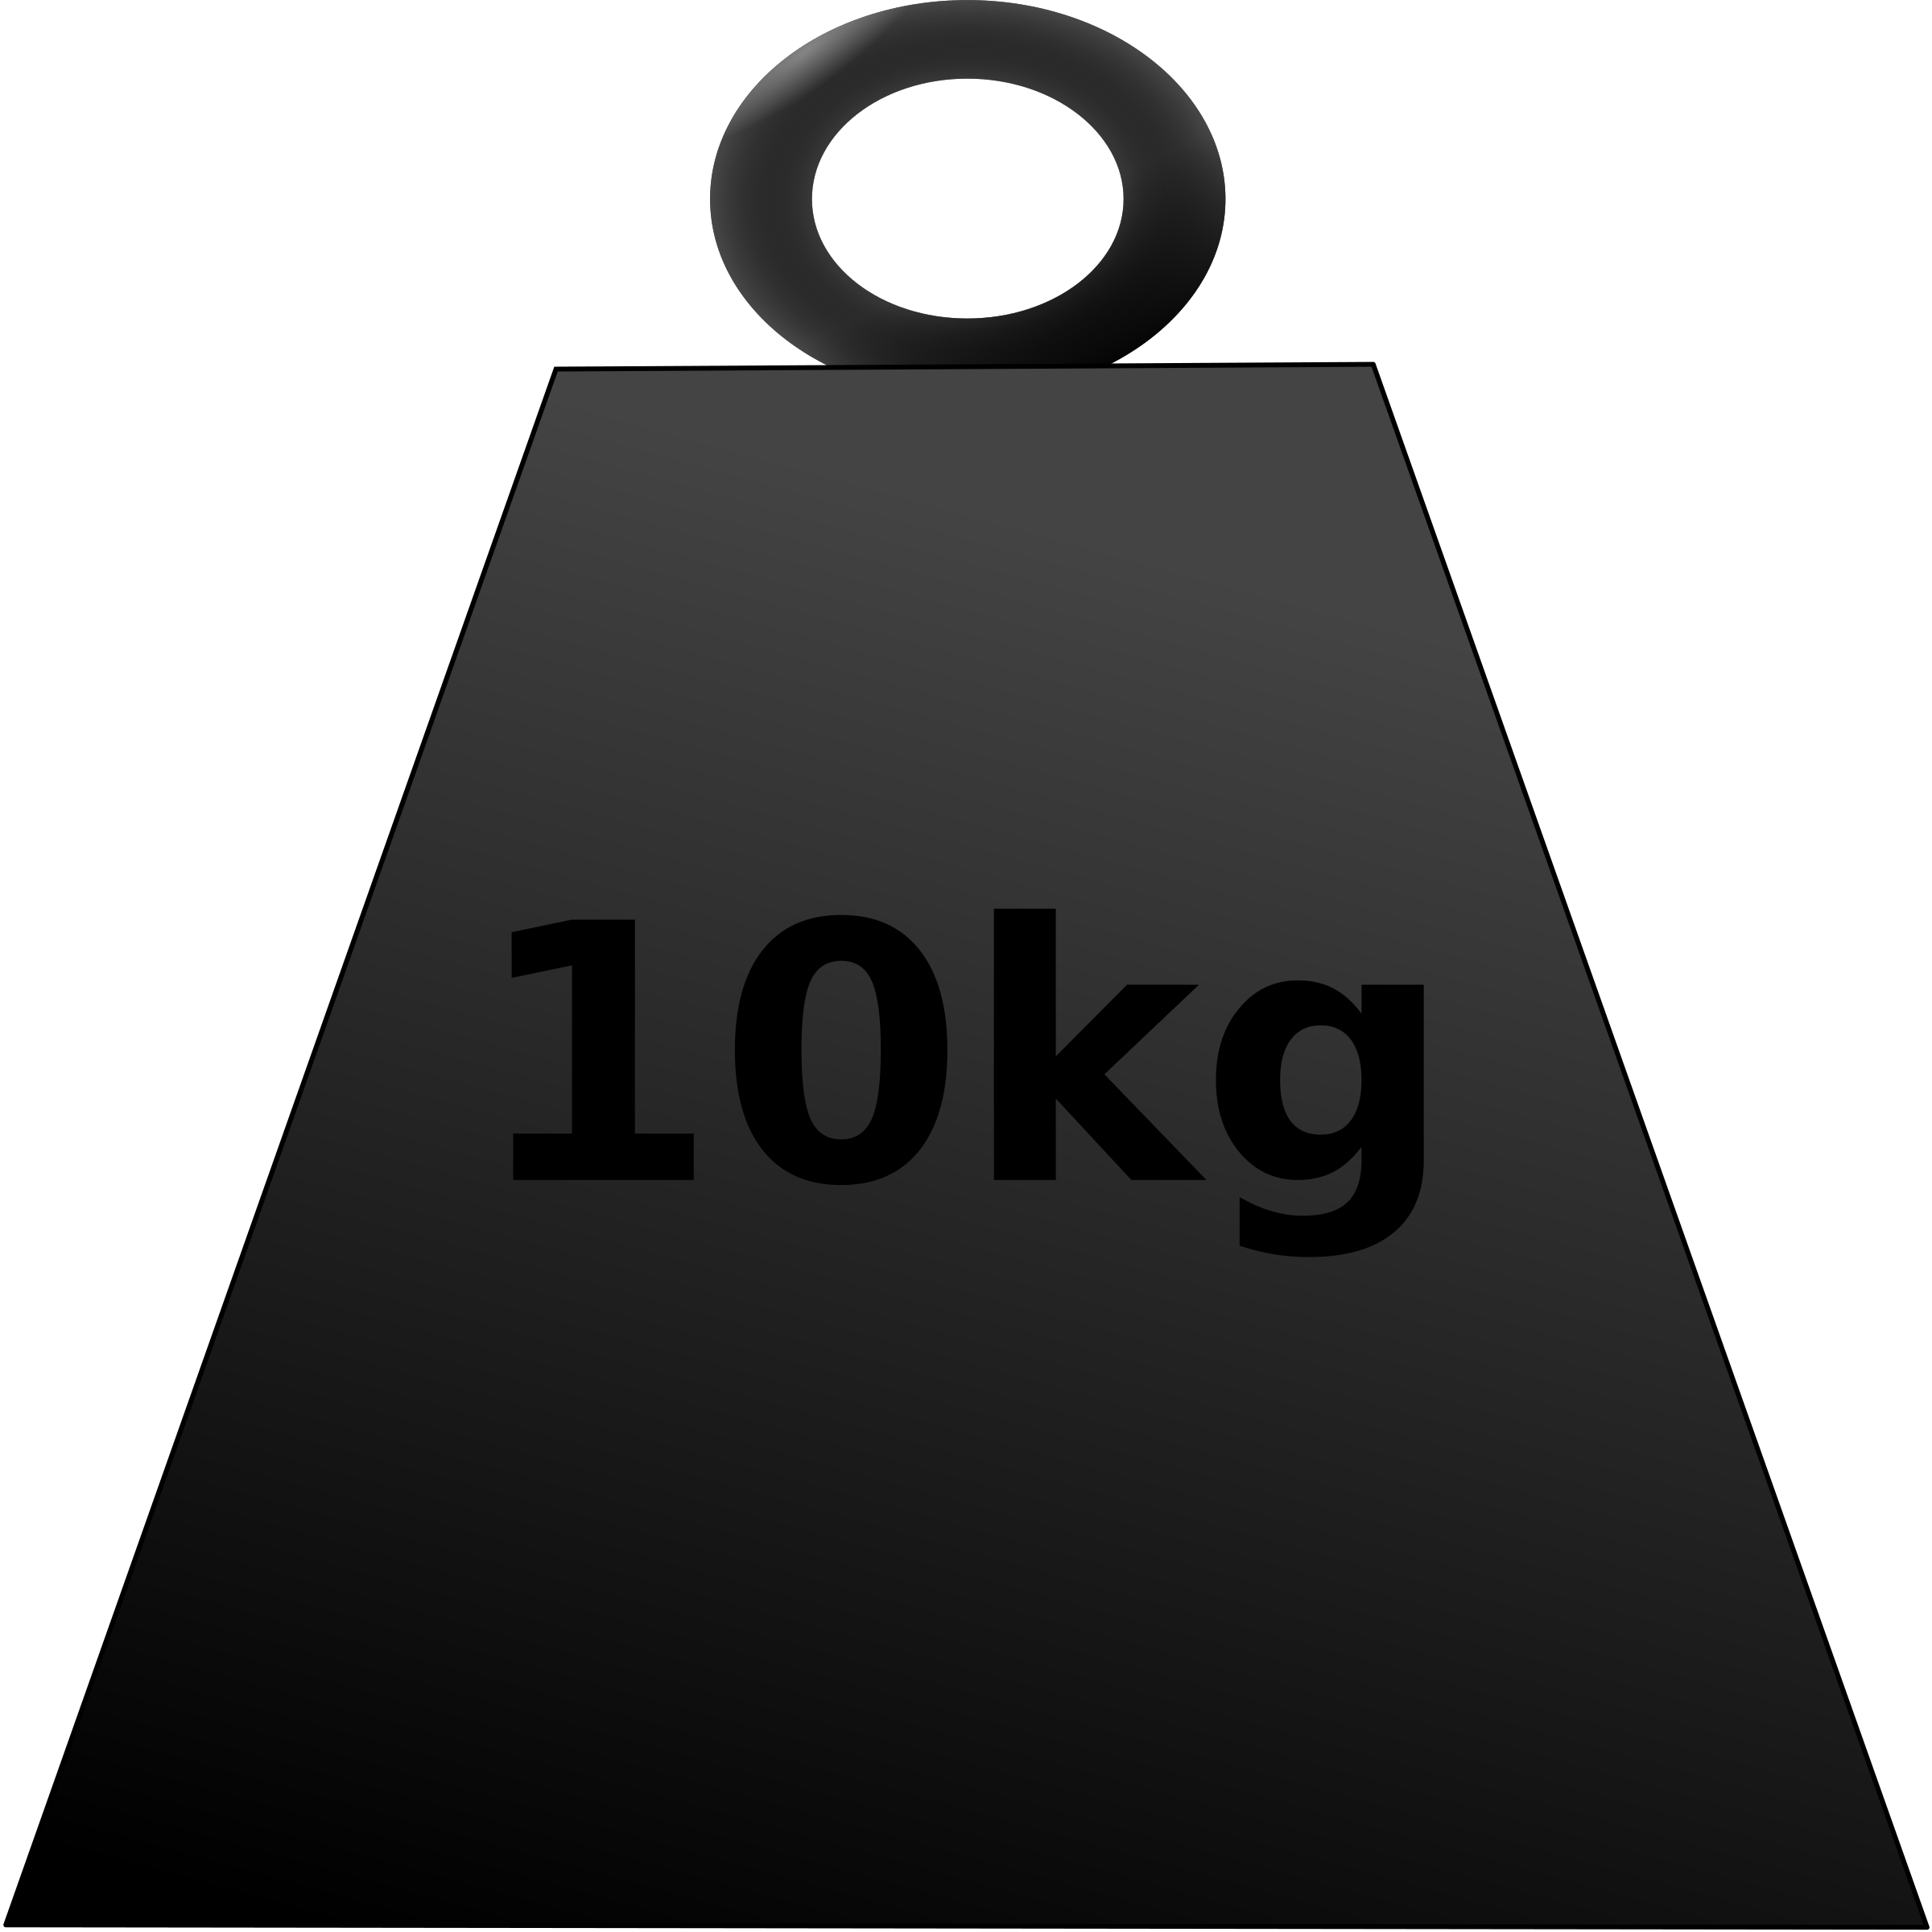 10 kg weight by klaasvangend